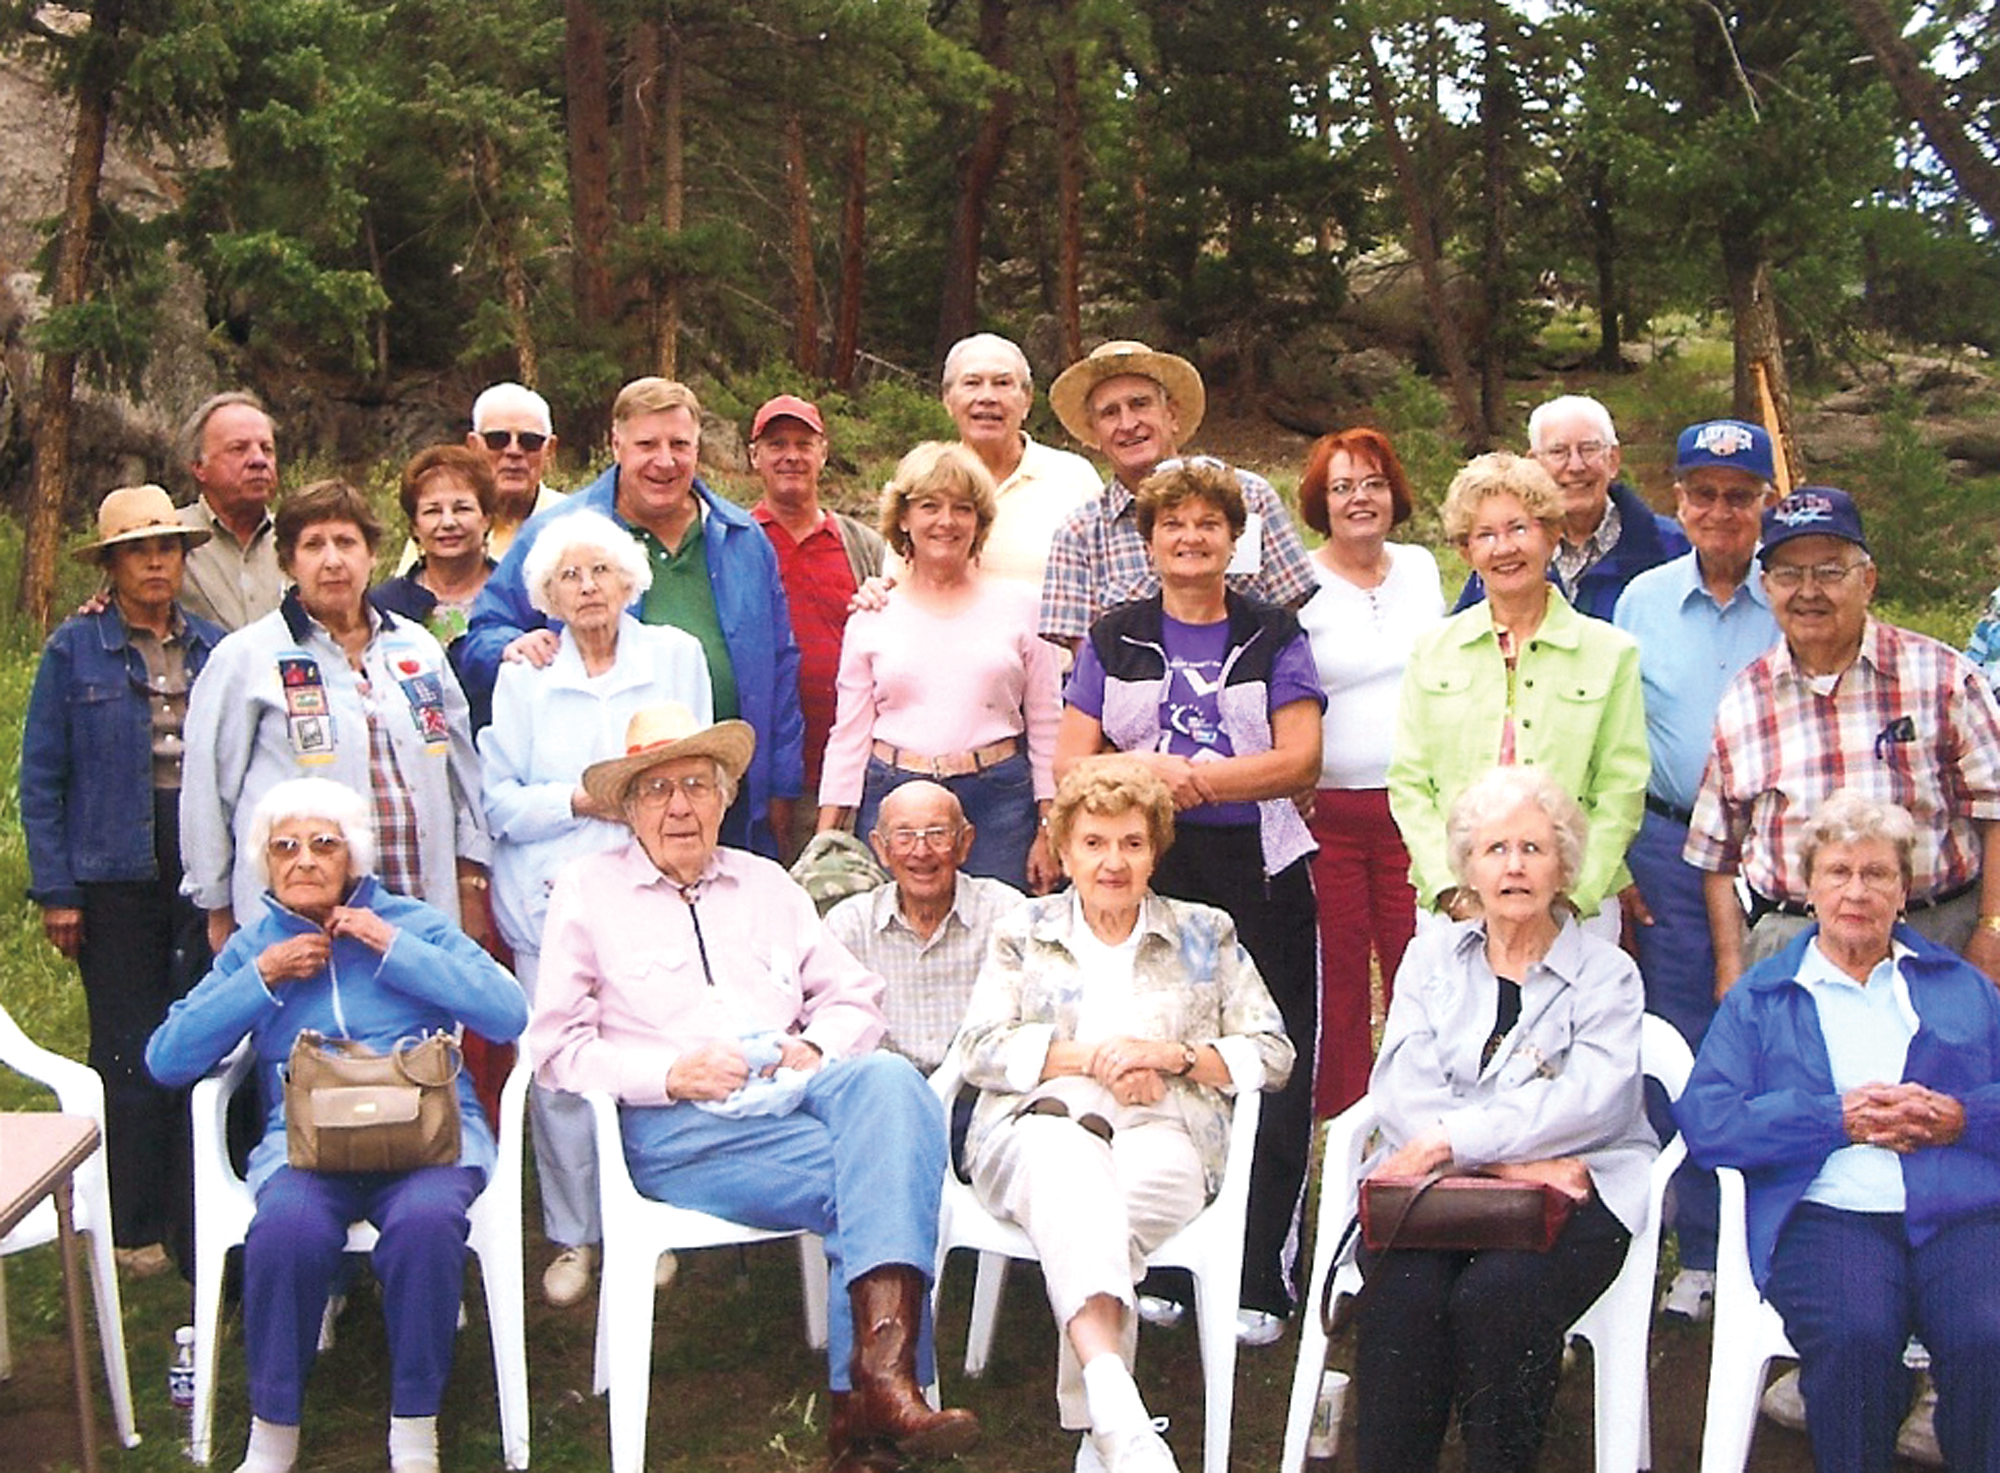 OX5 Aviation Pioneers Enjoy Fellowship in Conifer